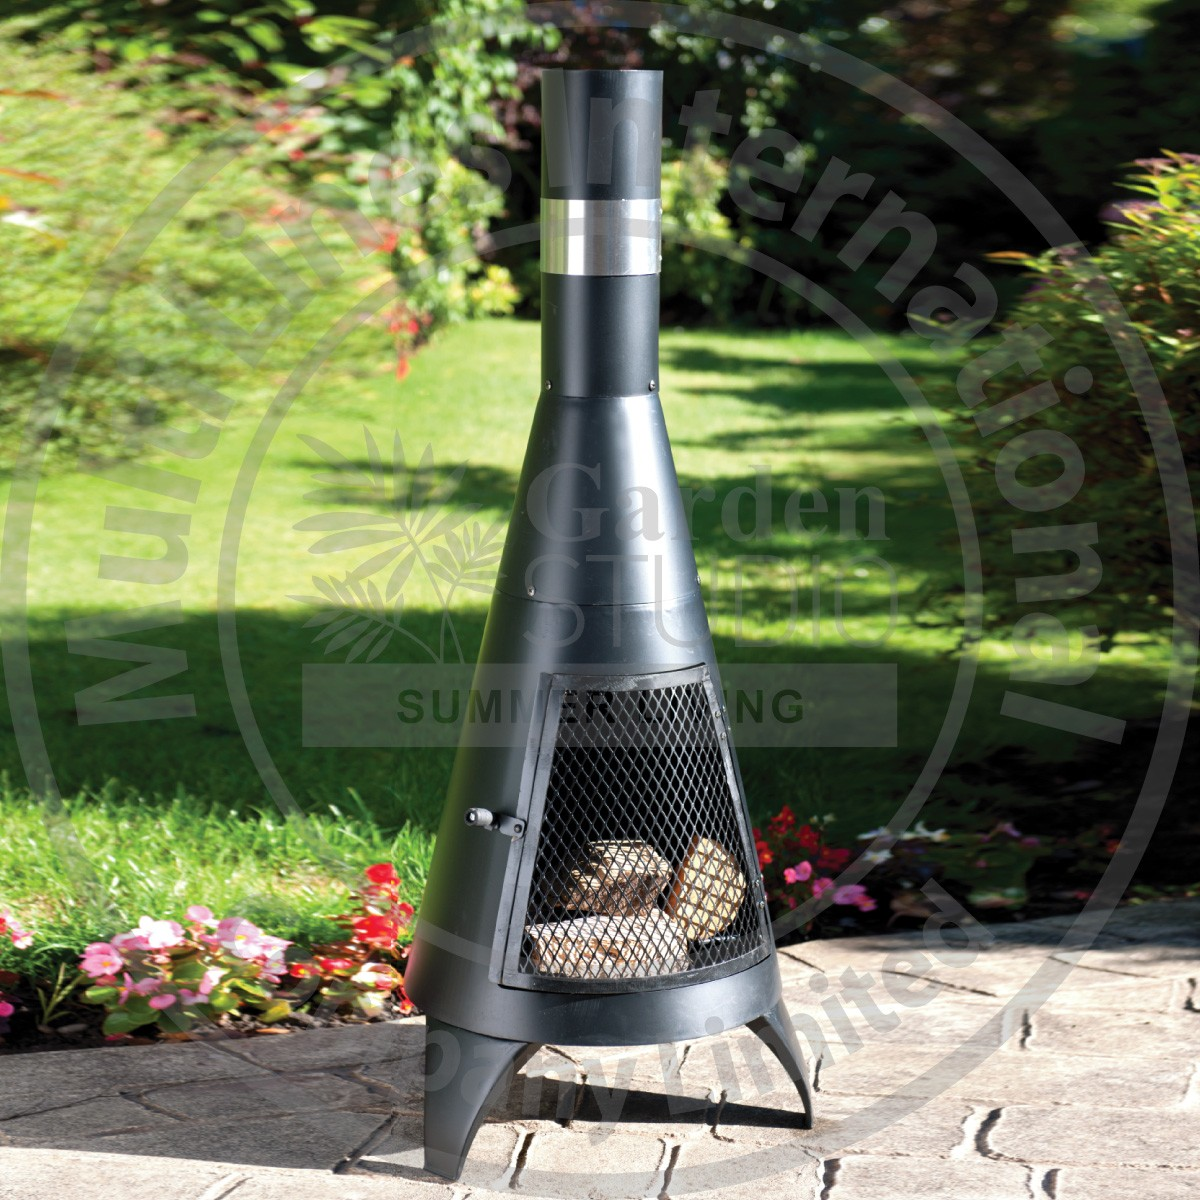 Wonderful Chiminea Outdoor Fireplace For Patio Furniture Ideas: Wonderful Black Iron Chiminea In Unique Design For Patio Furniture Ideas